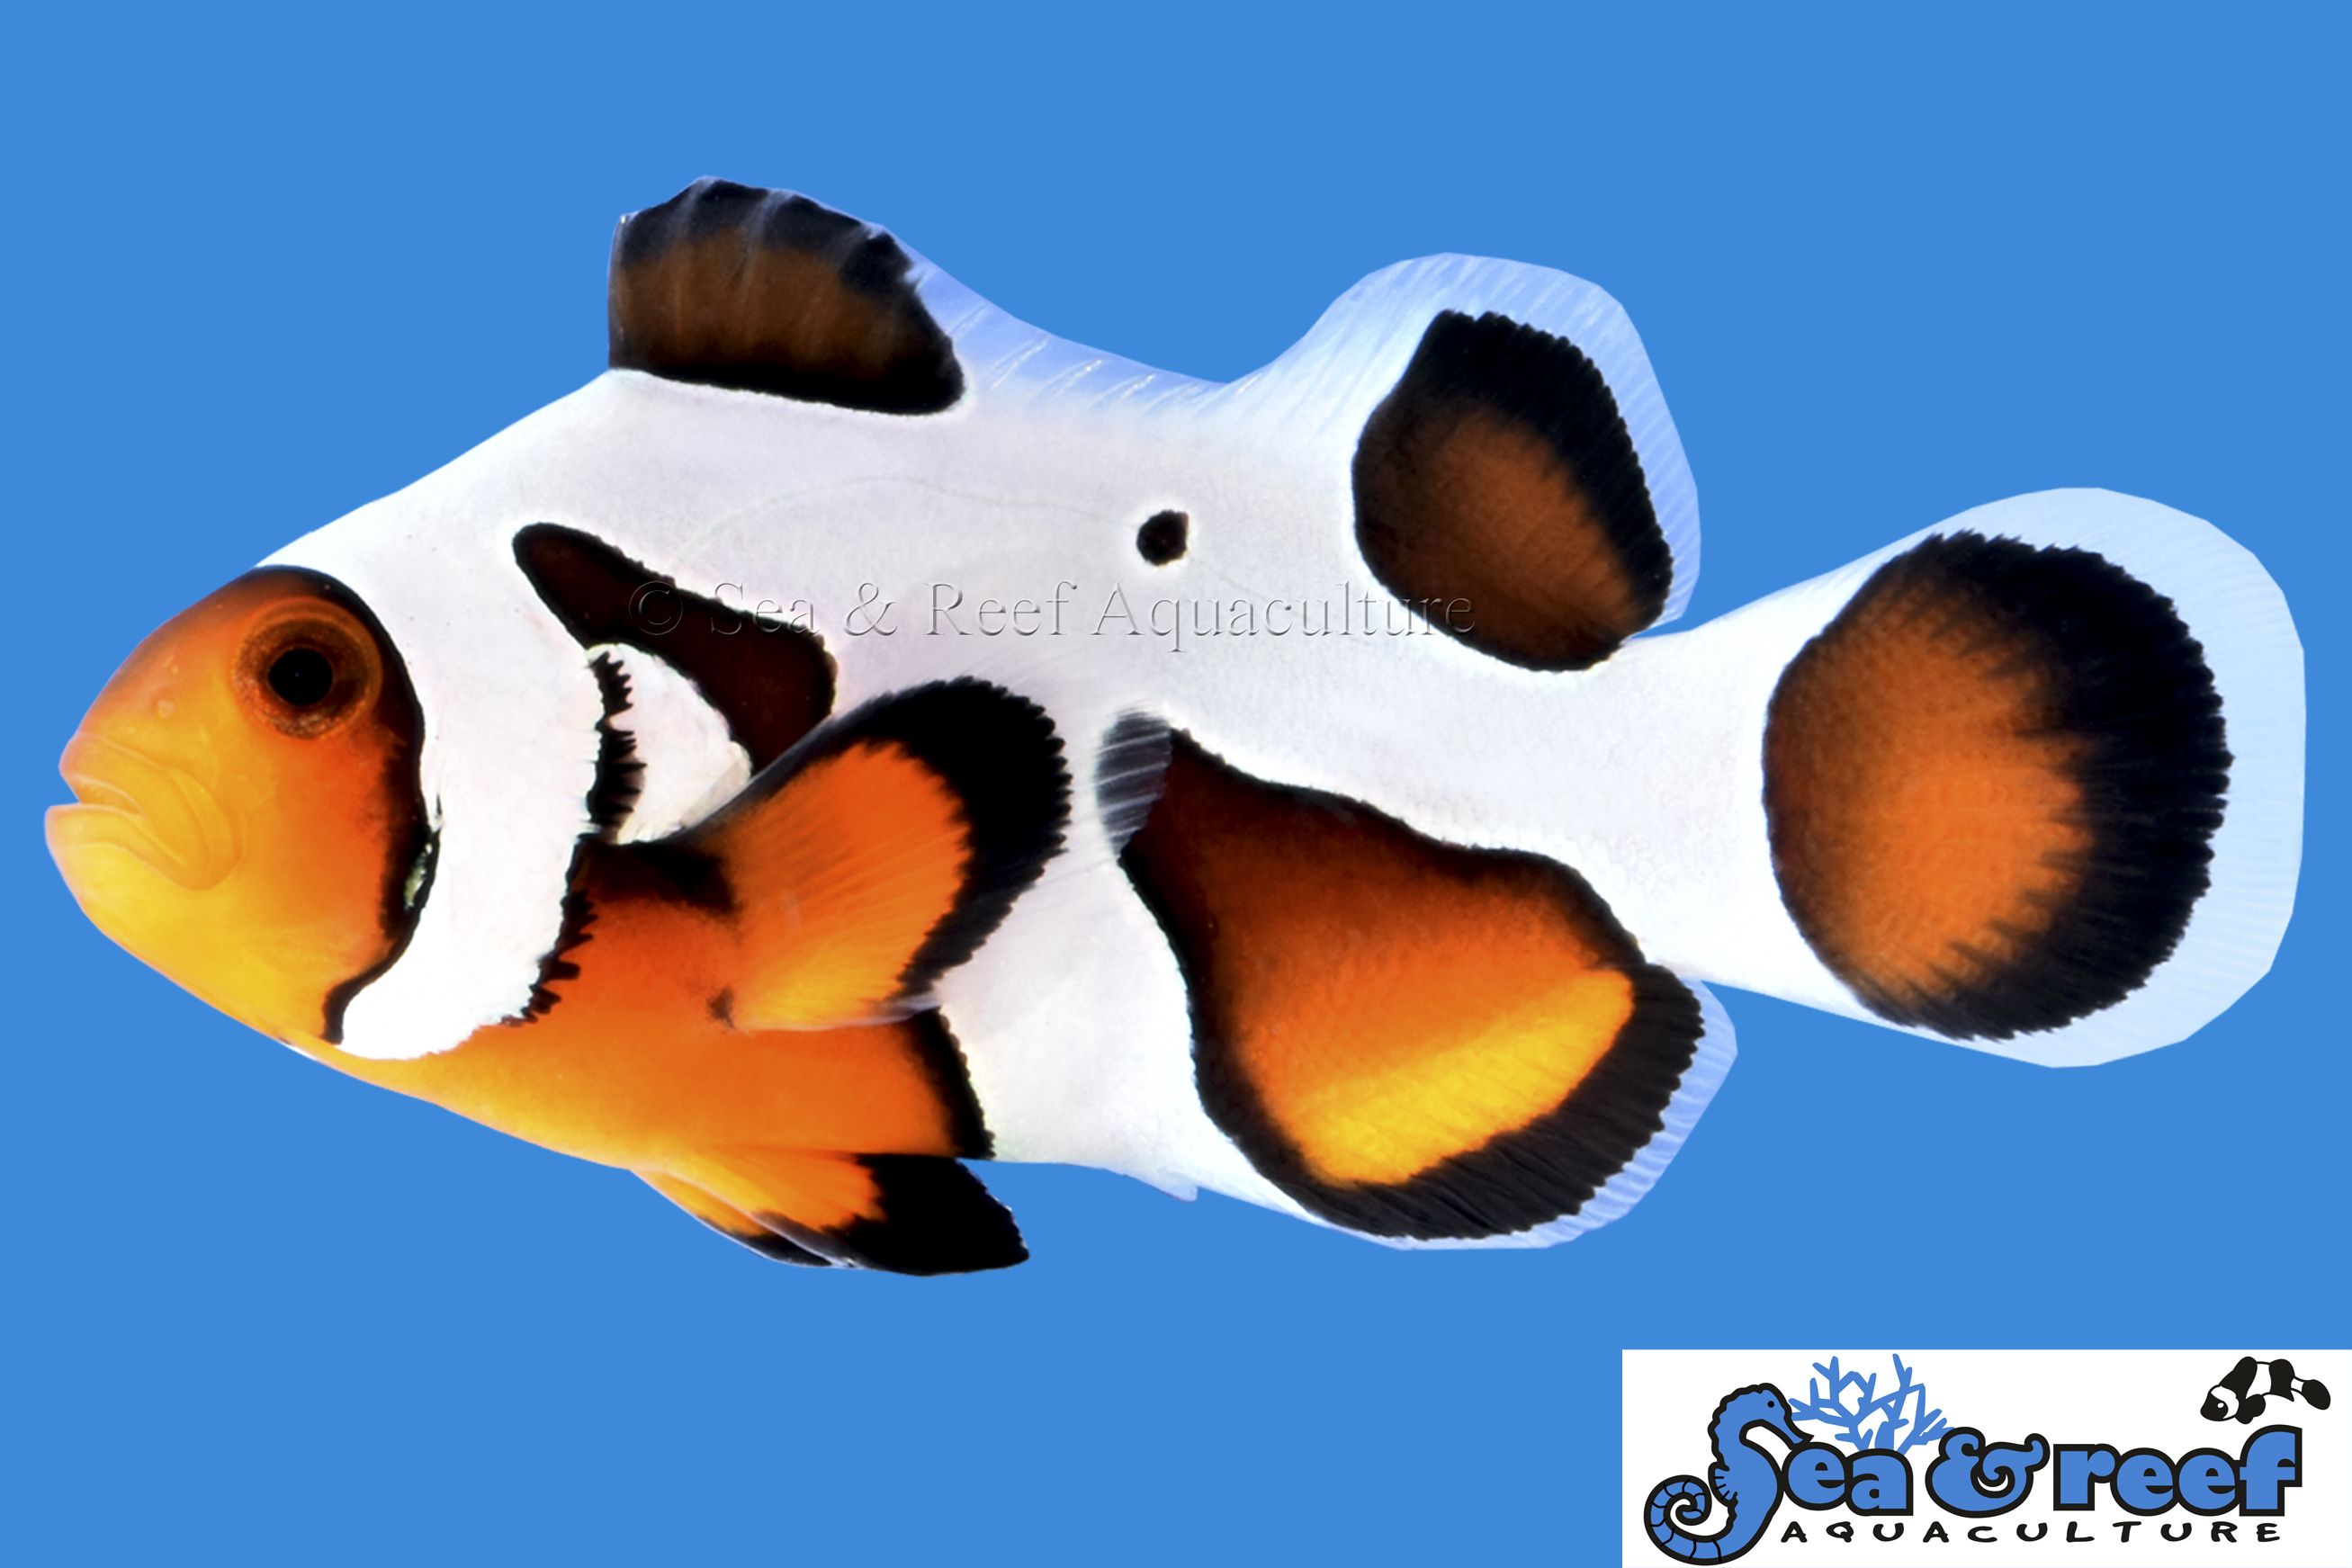 Mochavinci Extreme Clownfish Marine Ornamental Fish Sea And Reef Aquaculture Buy From Saltwater City In Renton Clown Fish Fish Saltwater Aquarium